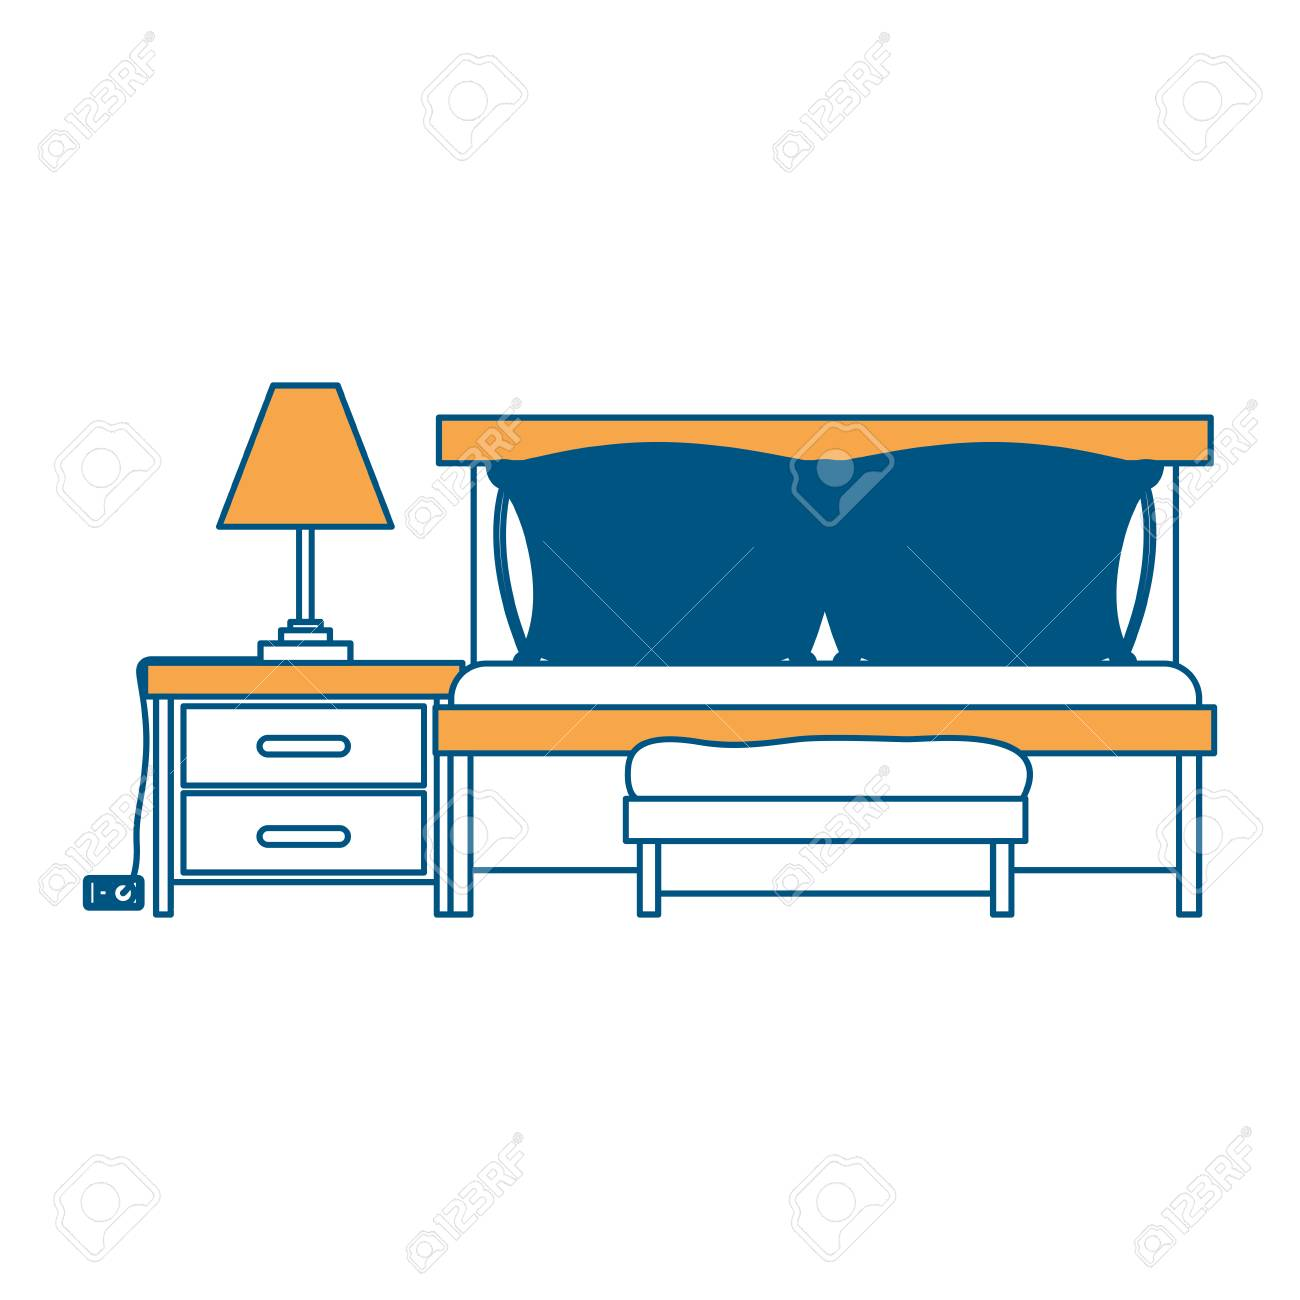 Bedroom With Sofa Bed And Lamp Over Nightstand Color Section Silhouette On  White Background Vector Illustration